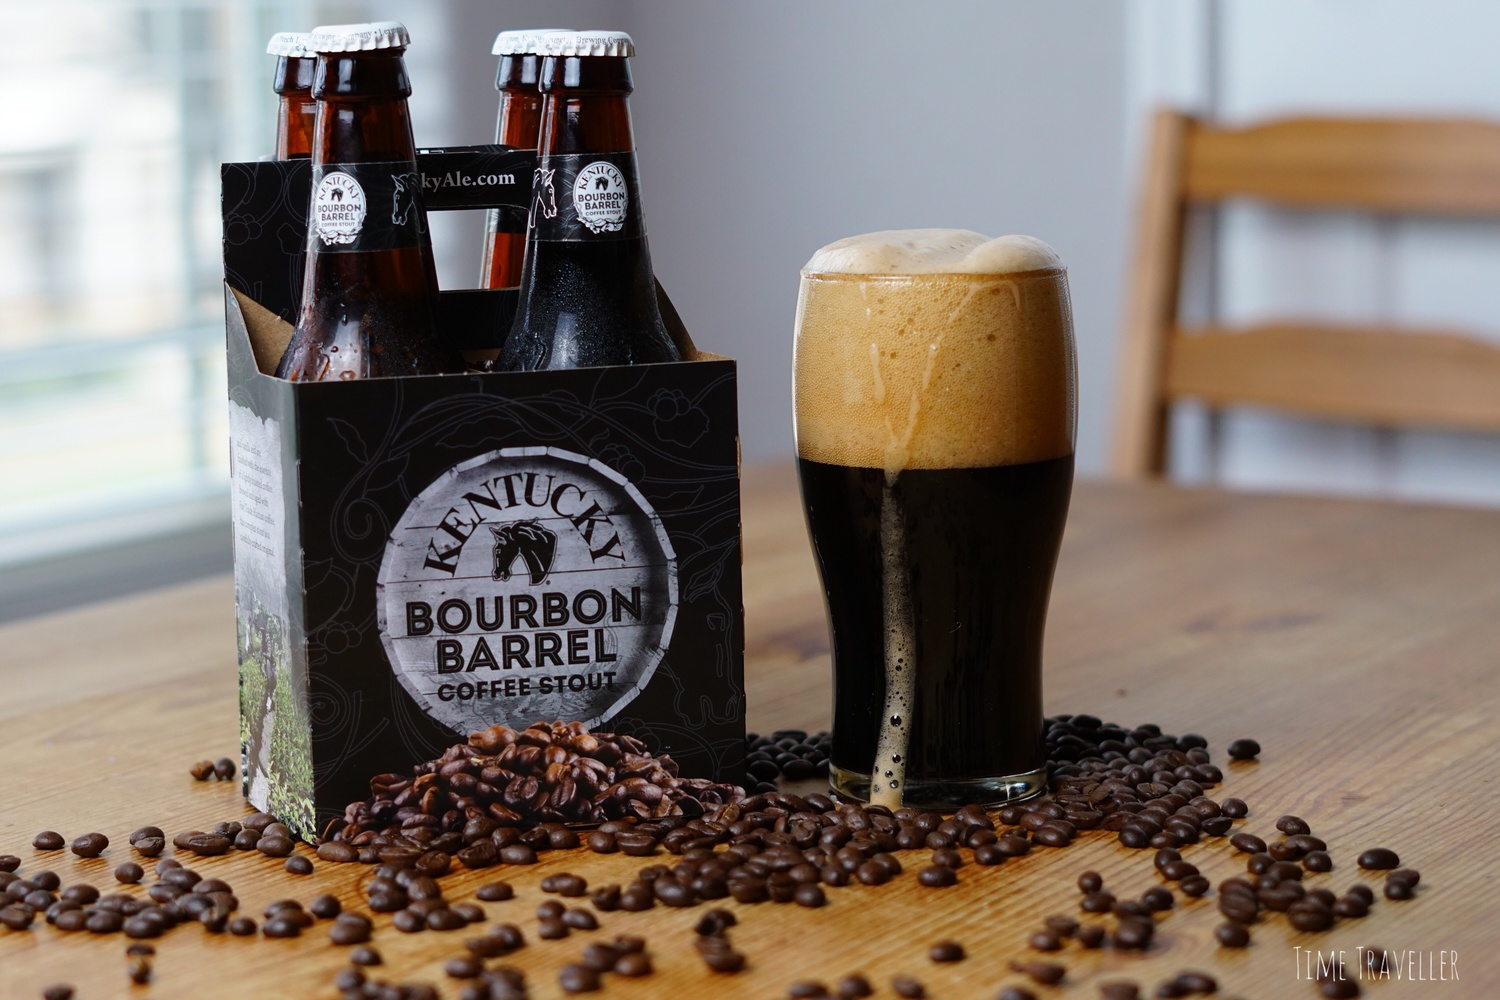 Kentucky Bourbon Barrel Coffee Stout Beer by Dereck Smith